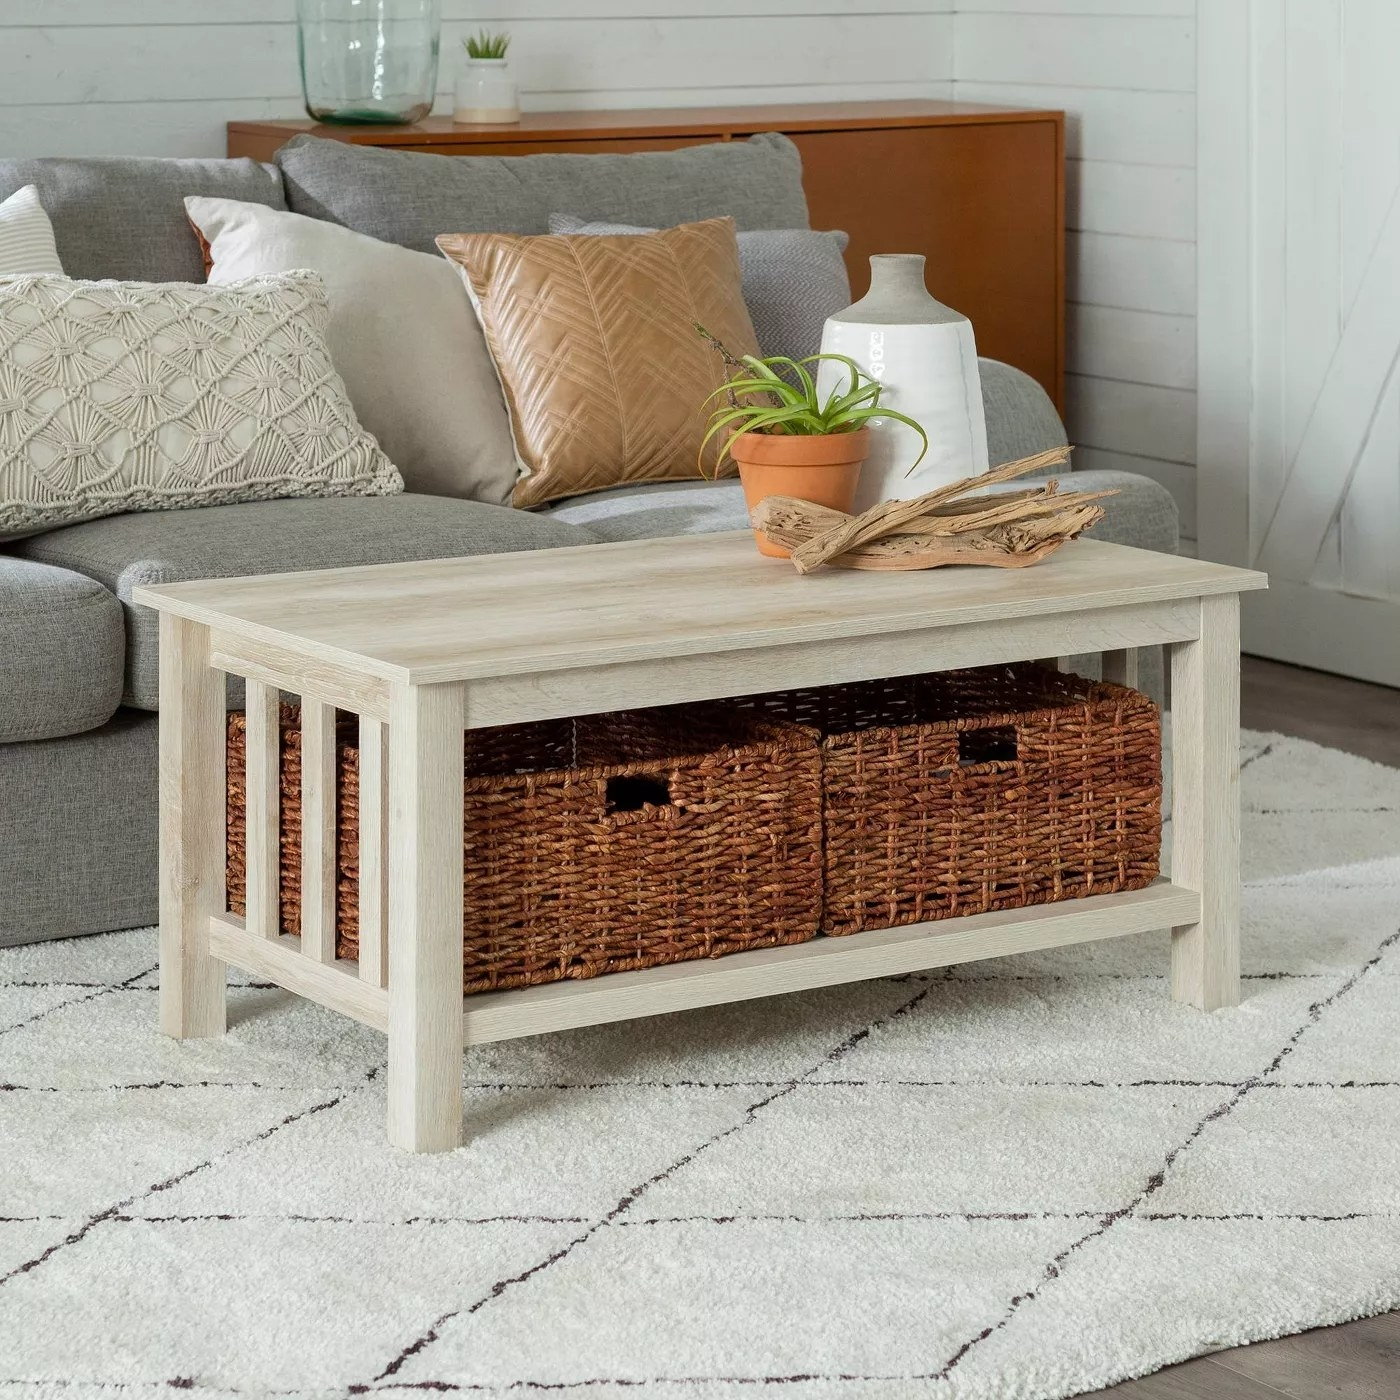 A coffee table with two baskets